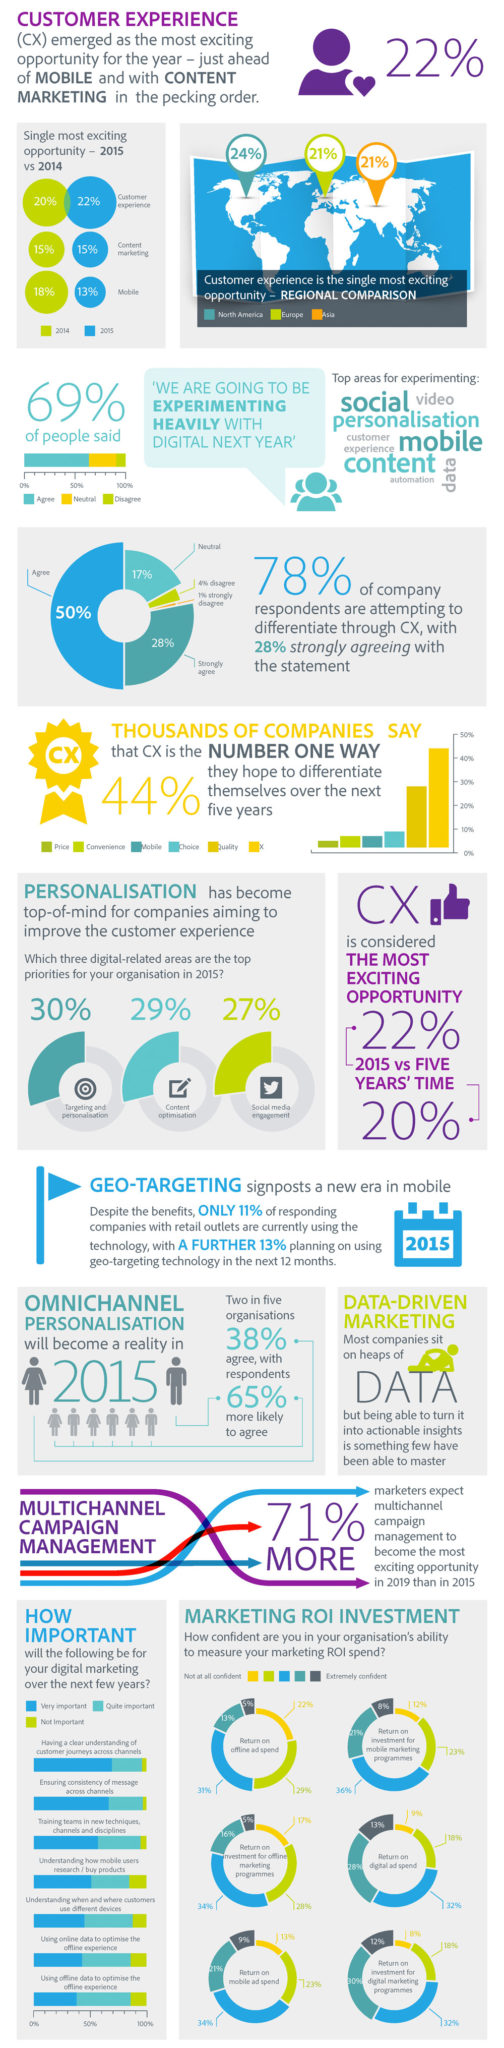 Digital Trends for 2015 [Infographic]